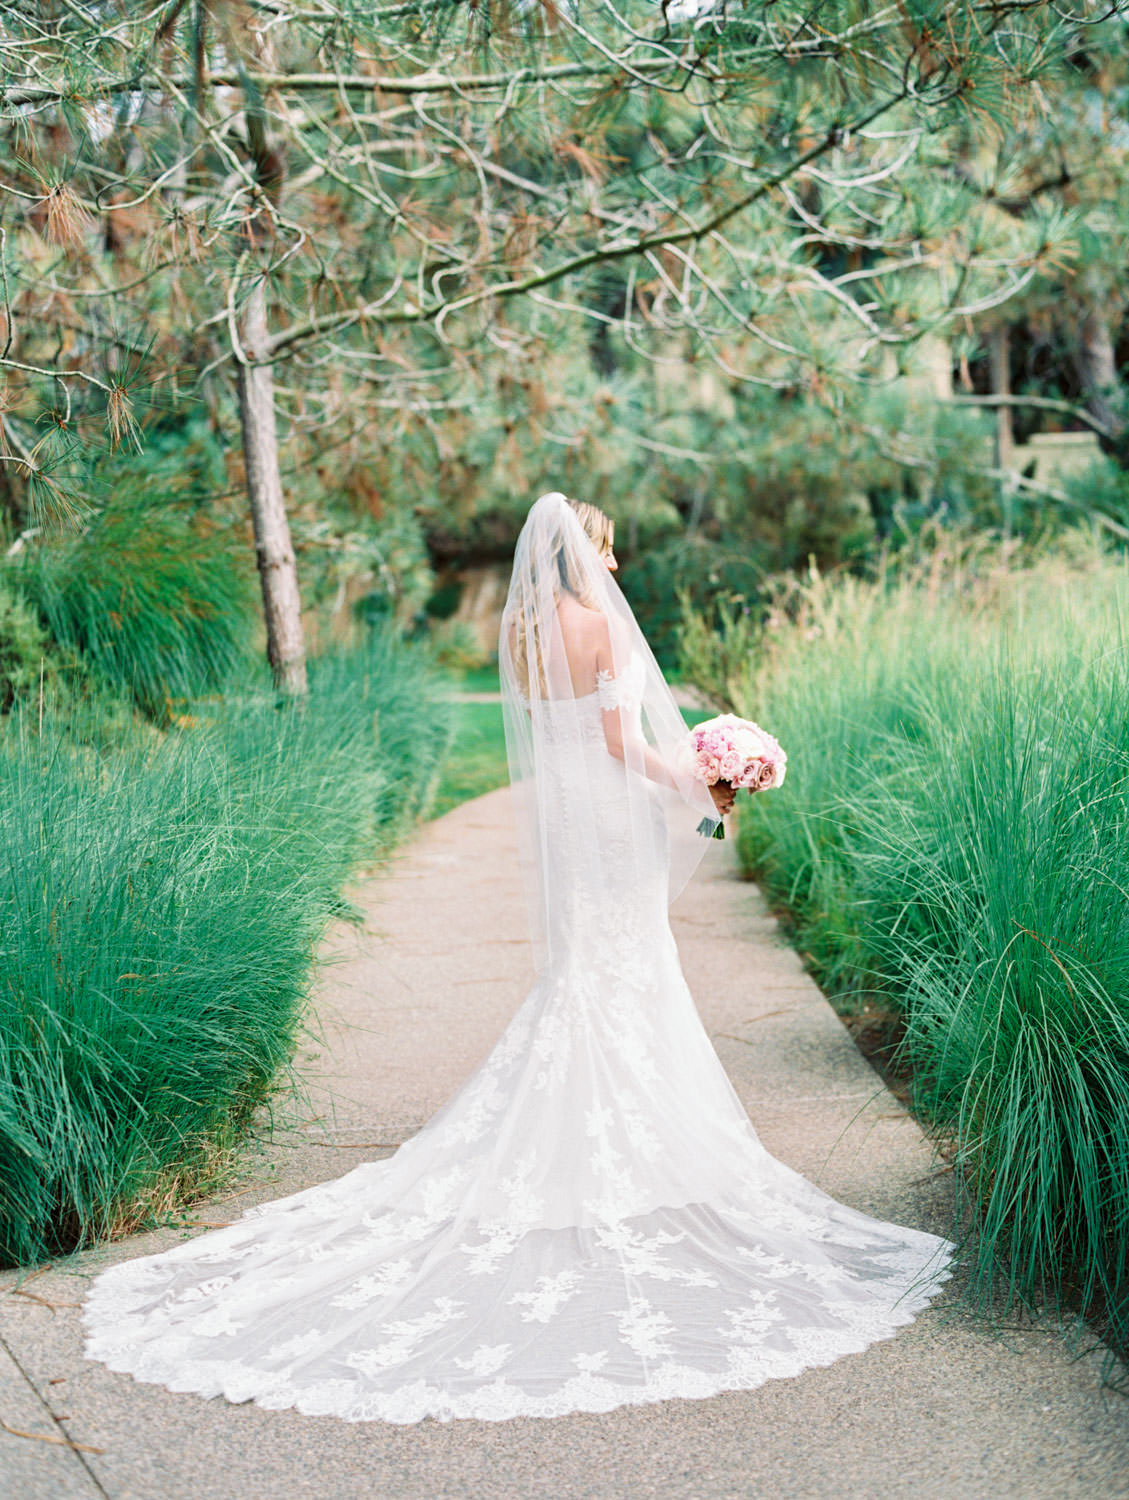 Bride in Pronovias off shoulder lace gown and long train, classic bridal portrait, Lodge at Torrey Pines wedding, film photography by Cavin Elizabeth Photography